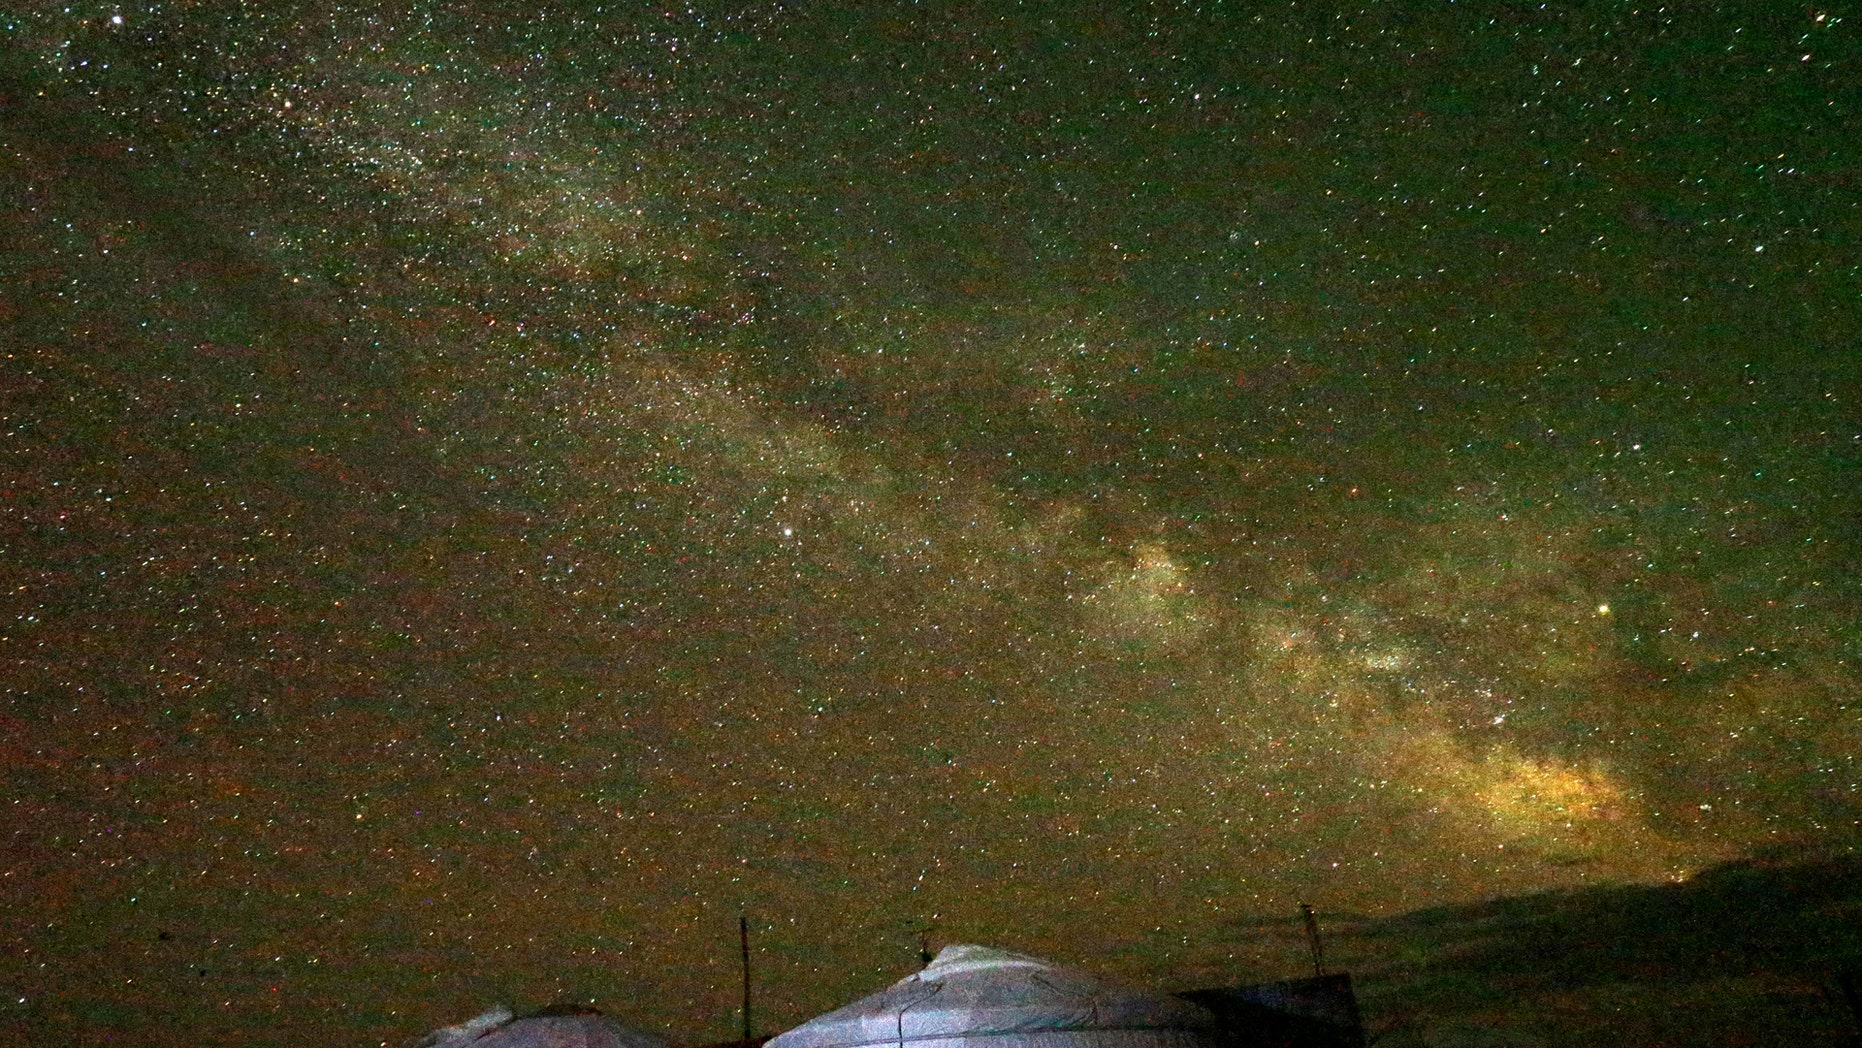 """File photo: The """"Milky Way"""" is seen across the sky in the early morning hours at the Takhin Tal National Park, part of the Great Gobi B Strictly Protected Area, in south-west Mongolia, June 23, 2017. Picture taken June 23, 2017. (REUTERS/David W Cerny)"""